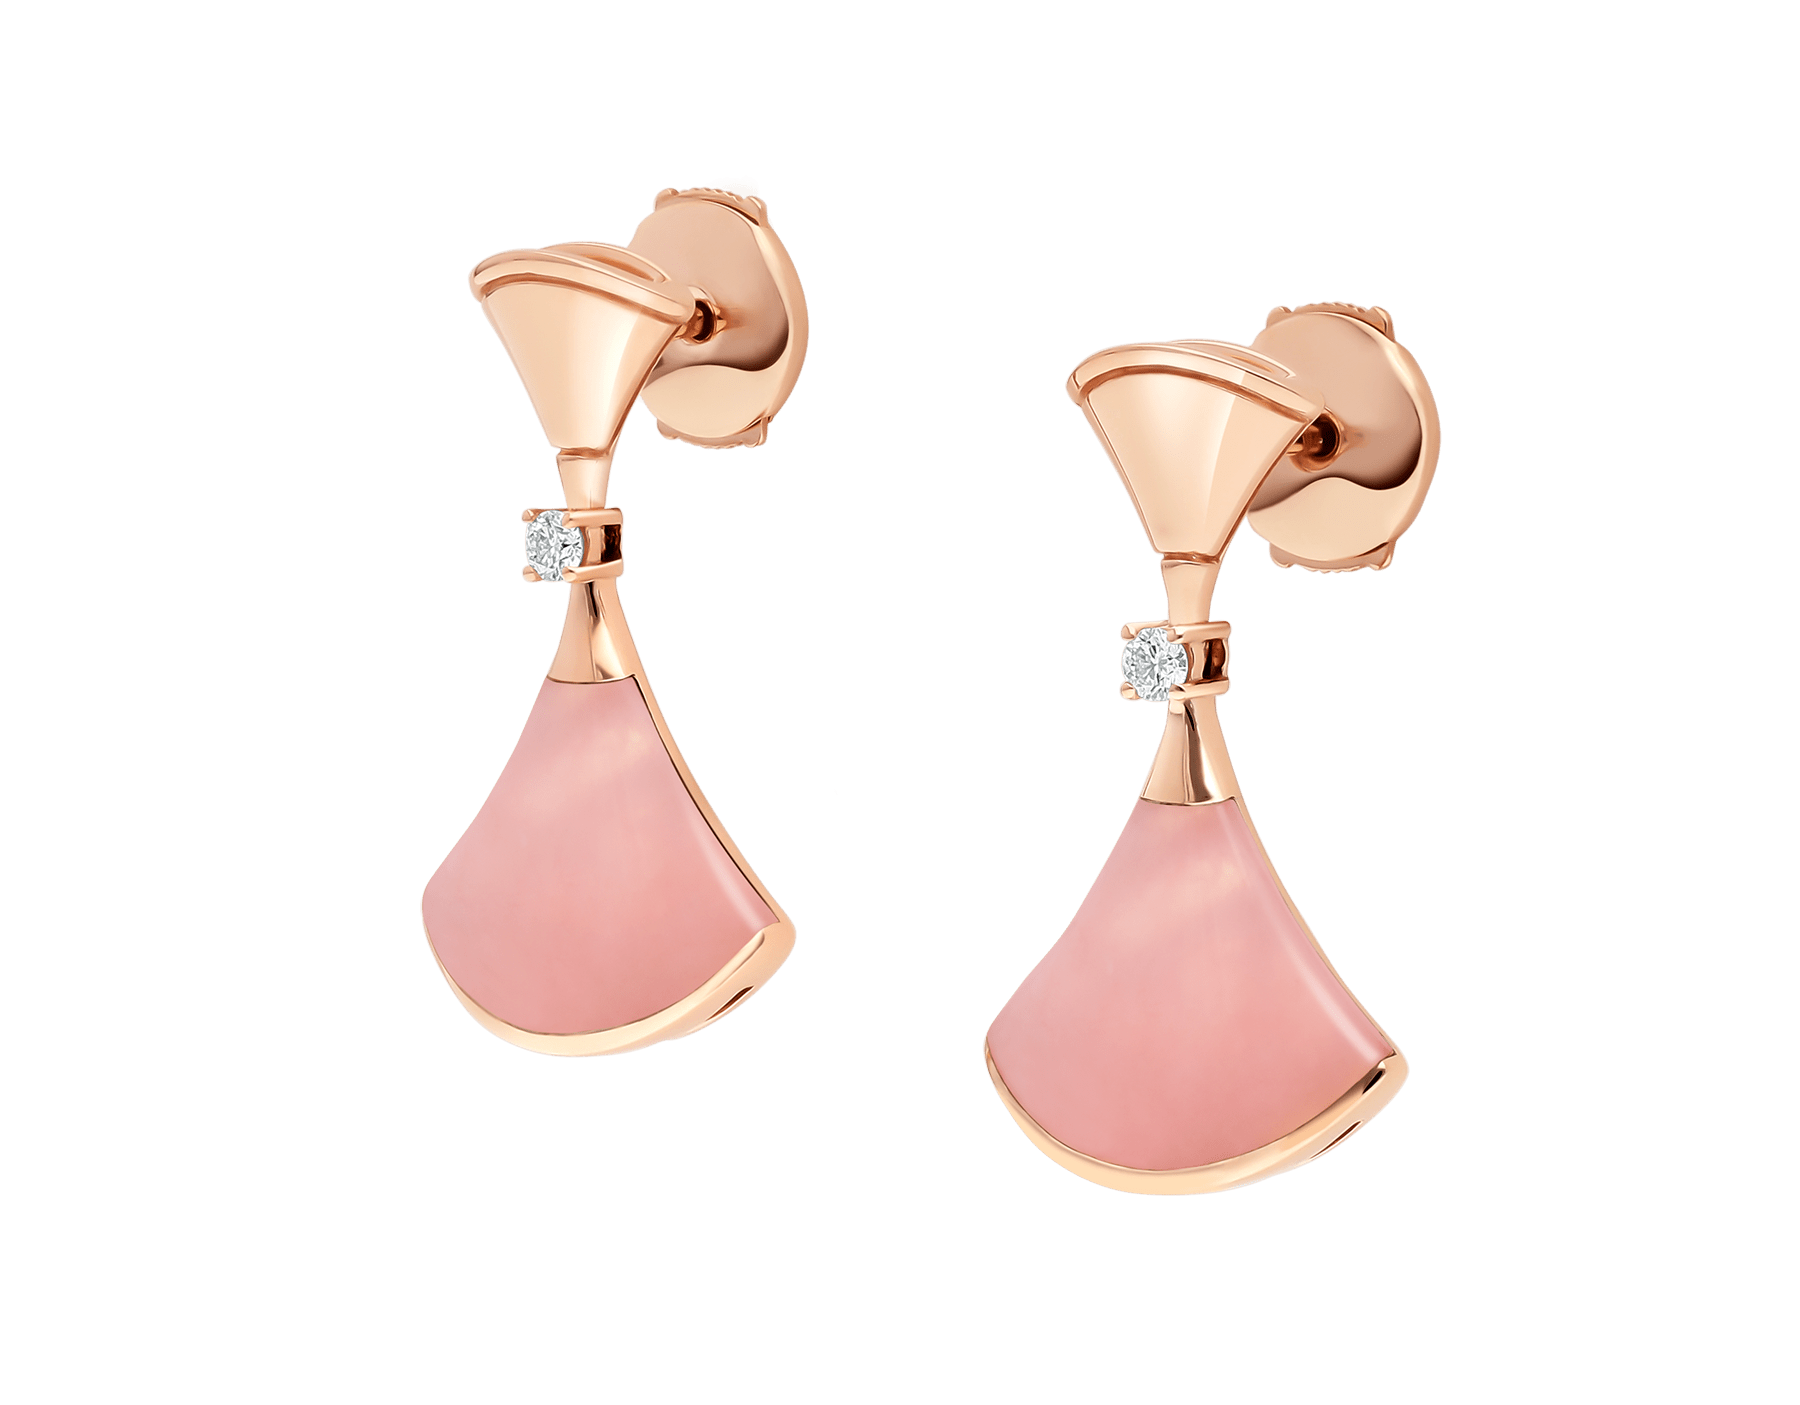 DIVAS' DREAM earrings in 18 kt rose gold set with pink opal inserts and pavé diamonds 357862 image 2